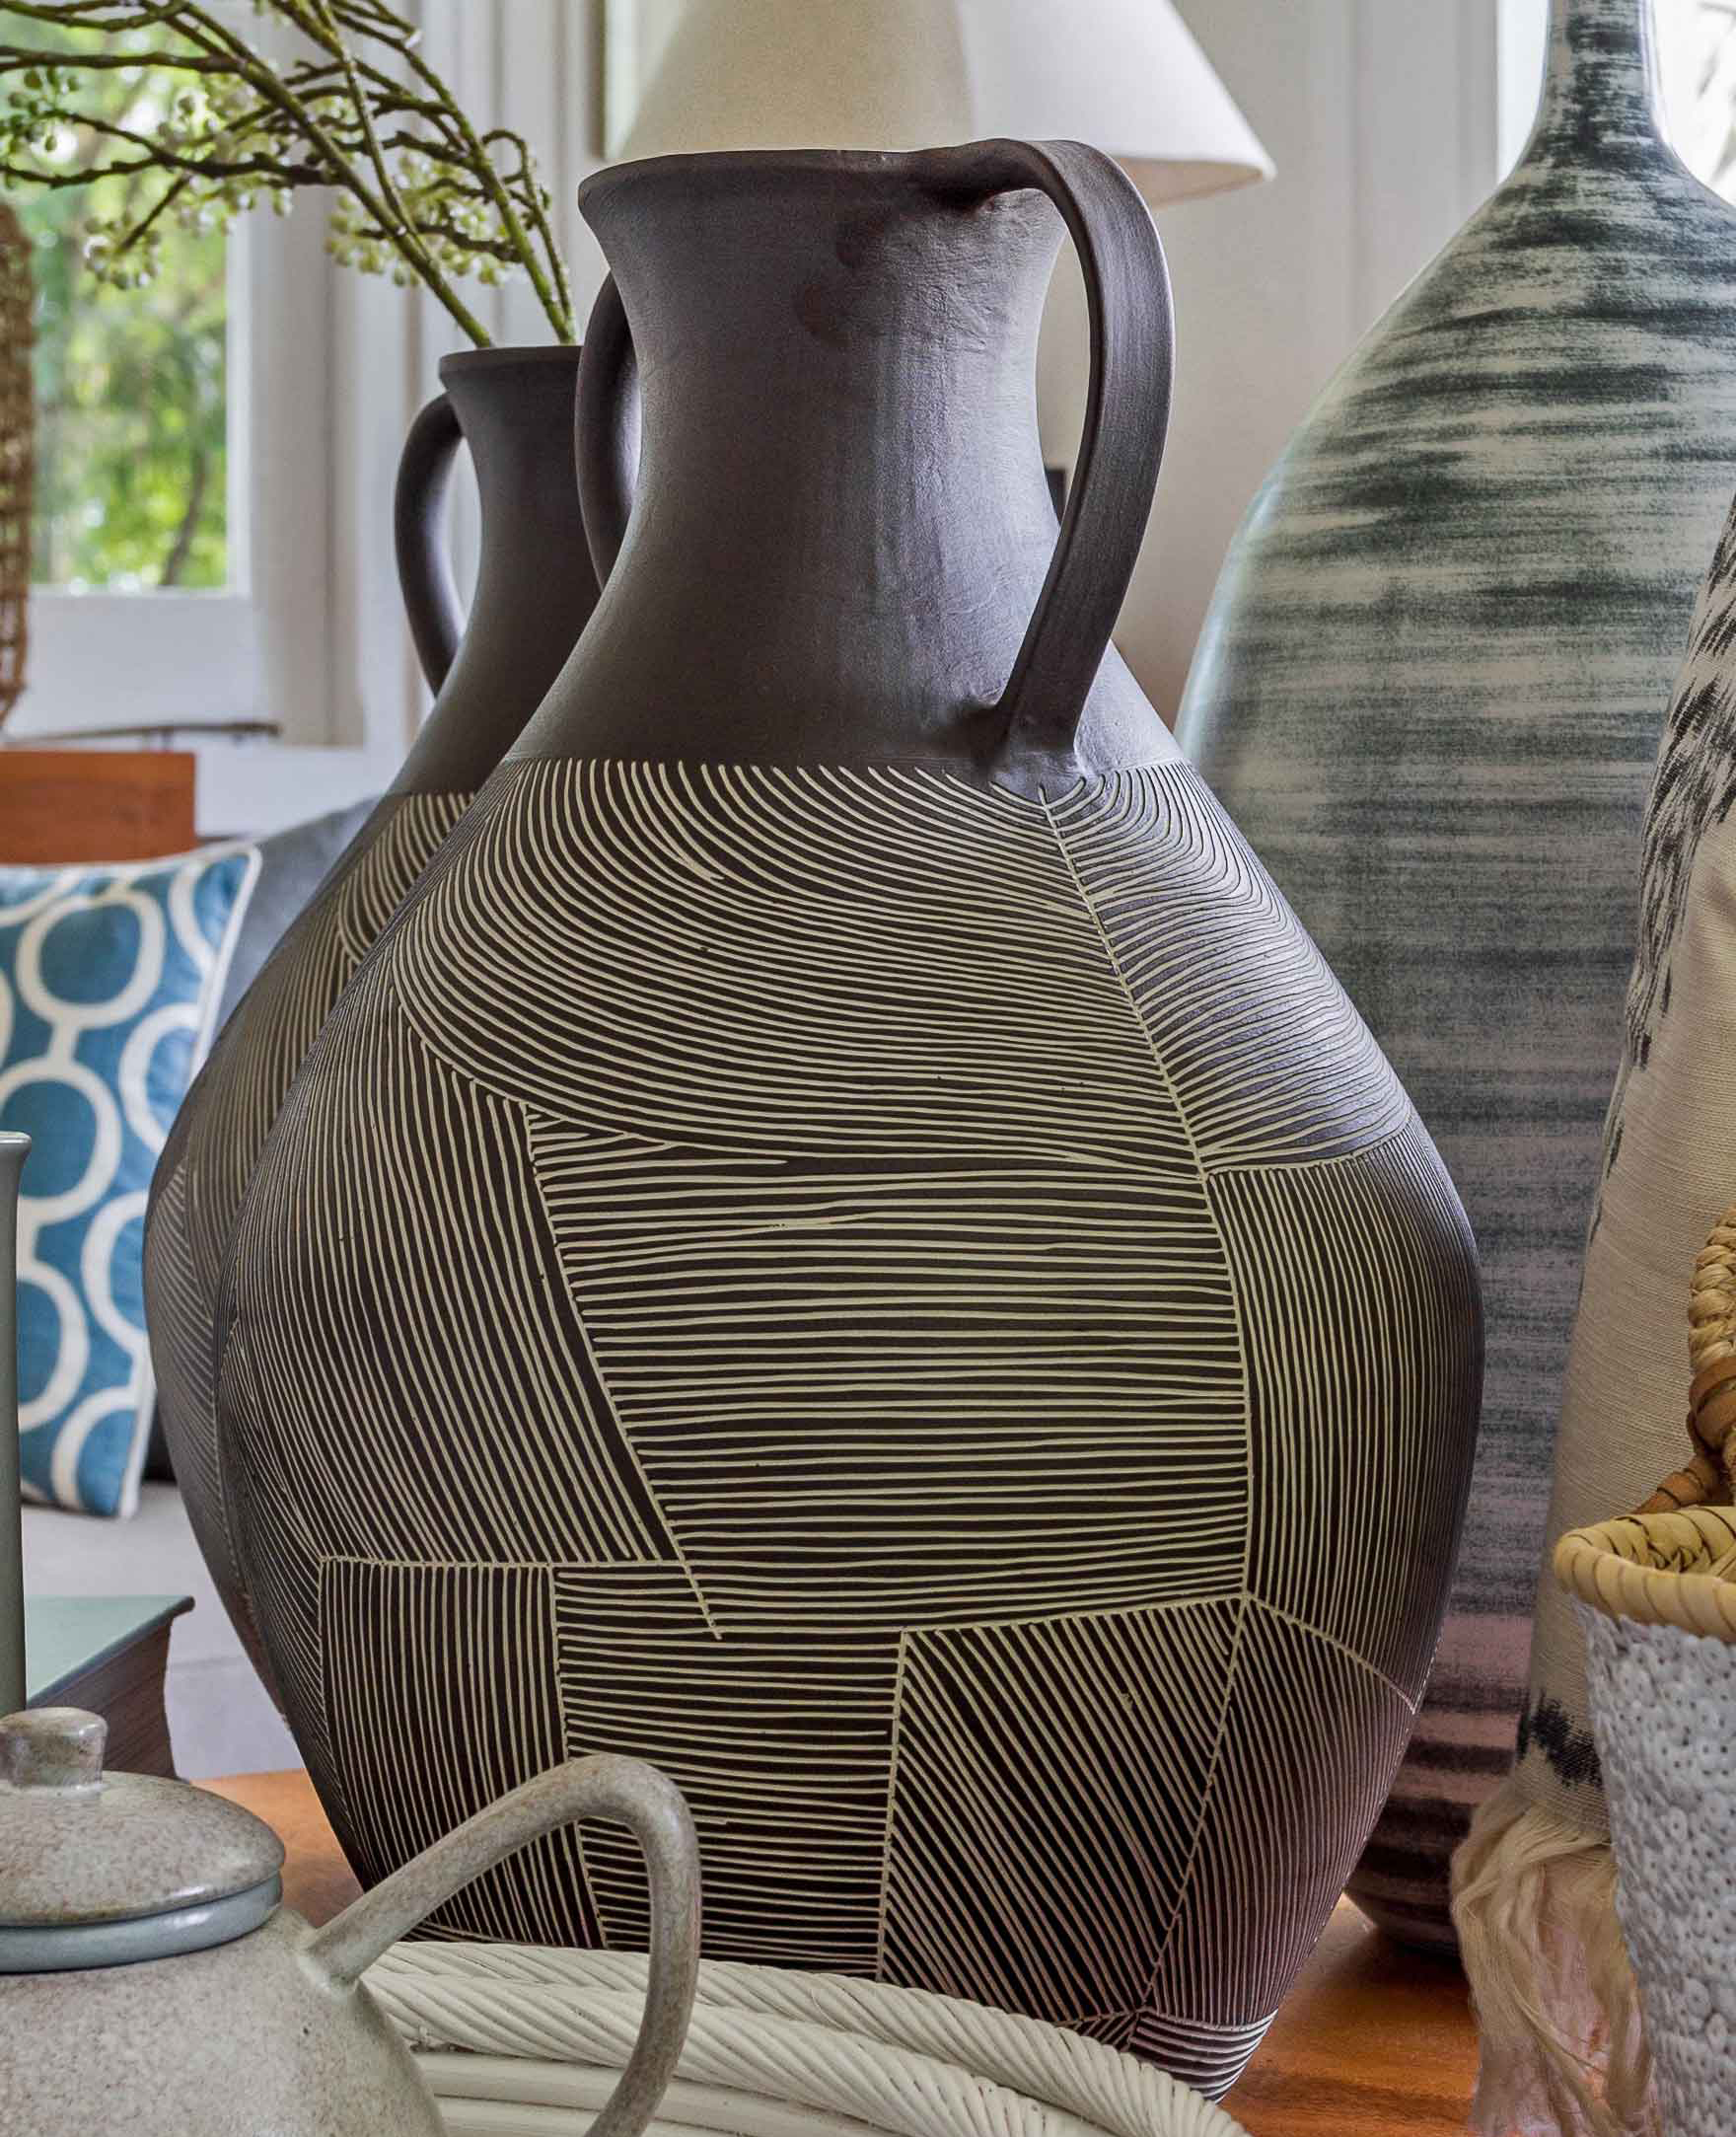 Beautiful Vase - Designed and made by hand using a combination of traditional and modern techniques, these beautiful vases have been made to last a lifetime.